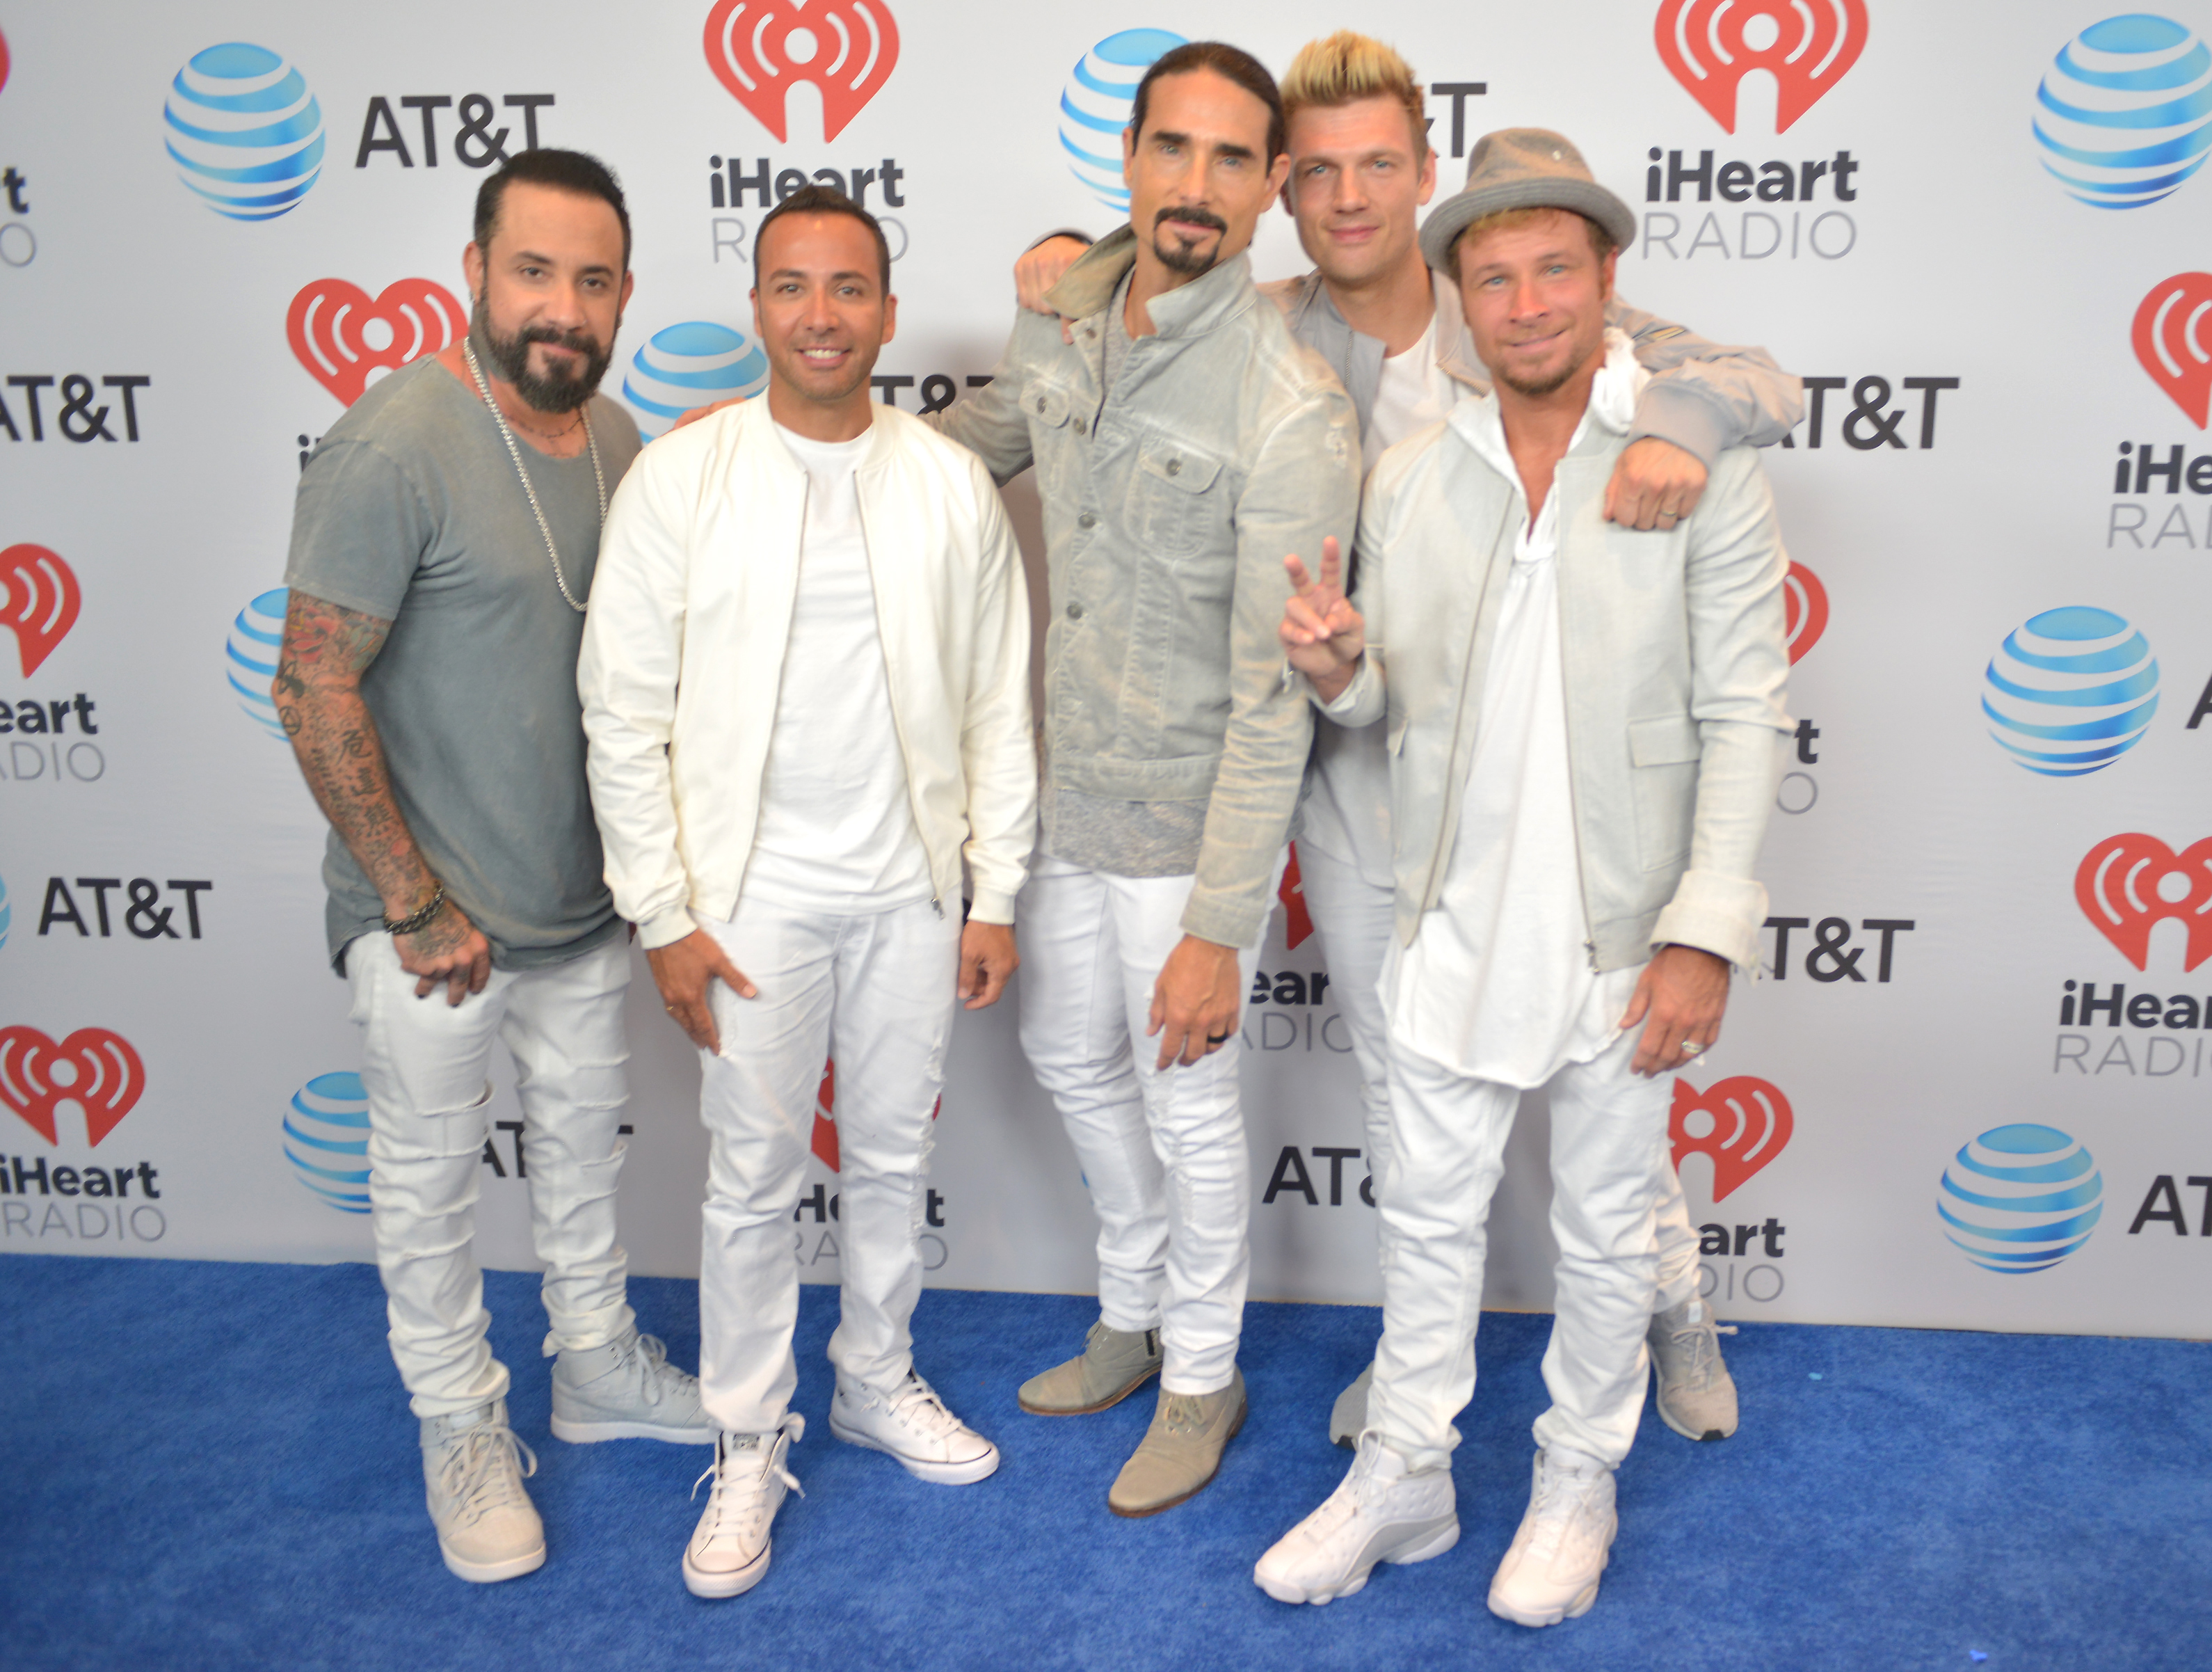 iHeartSummer 2017 at Fontainebleau Miami Beach - Day 2  Featuring: AJ McLean, Howie Dorough, Kevin Richardson, Nick Carter, Brian Littrell from the Back Street Boys Where: Miami Beach, Florida, United States When: 11 Jun 2017 Credit: Johnny Louis/WENN.com